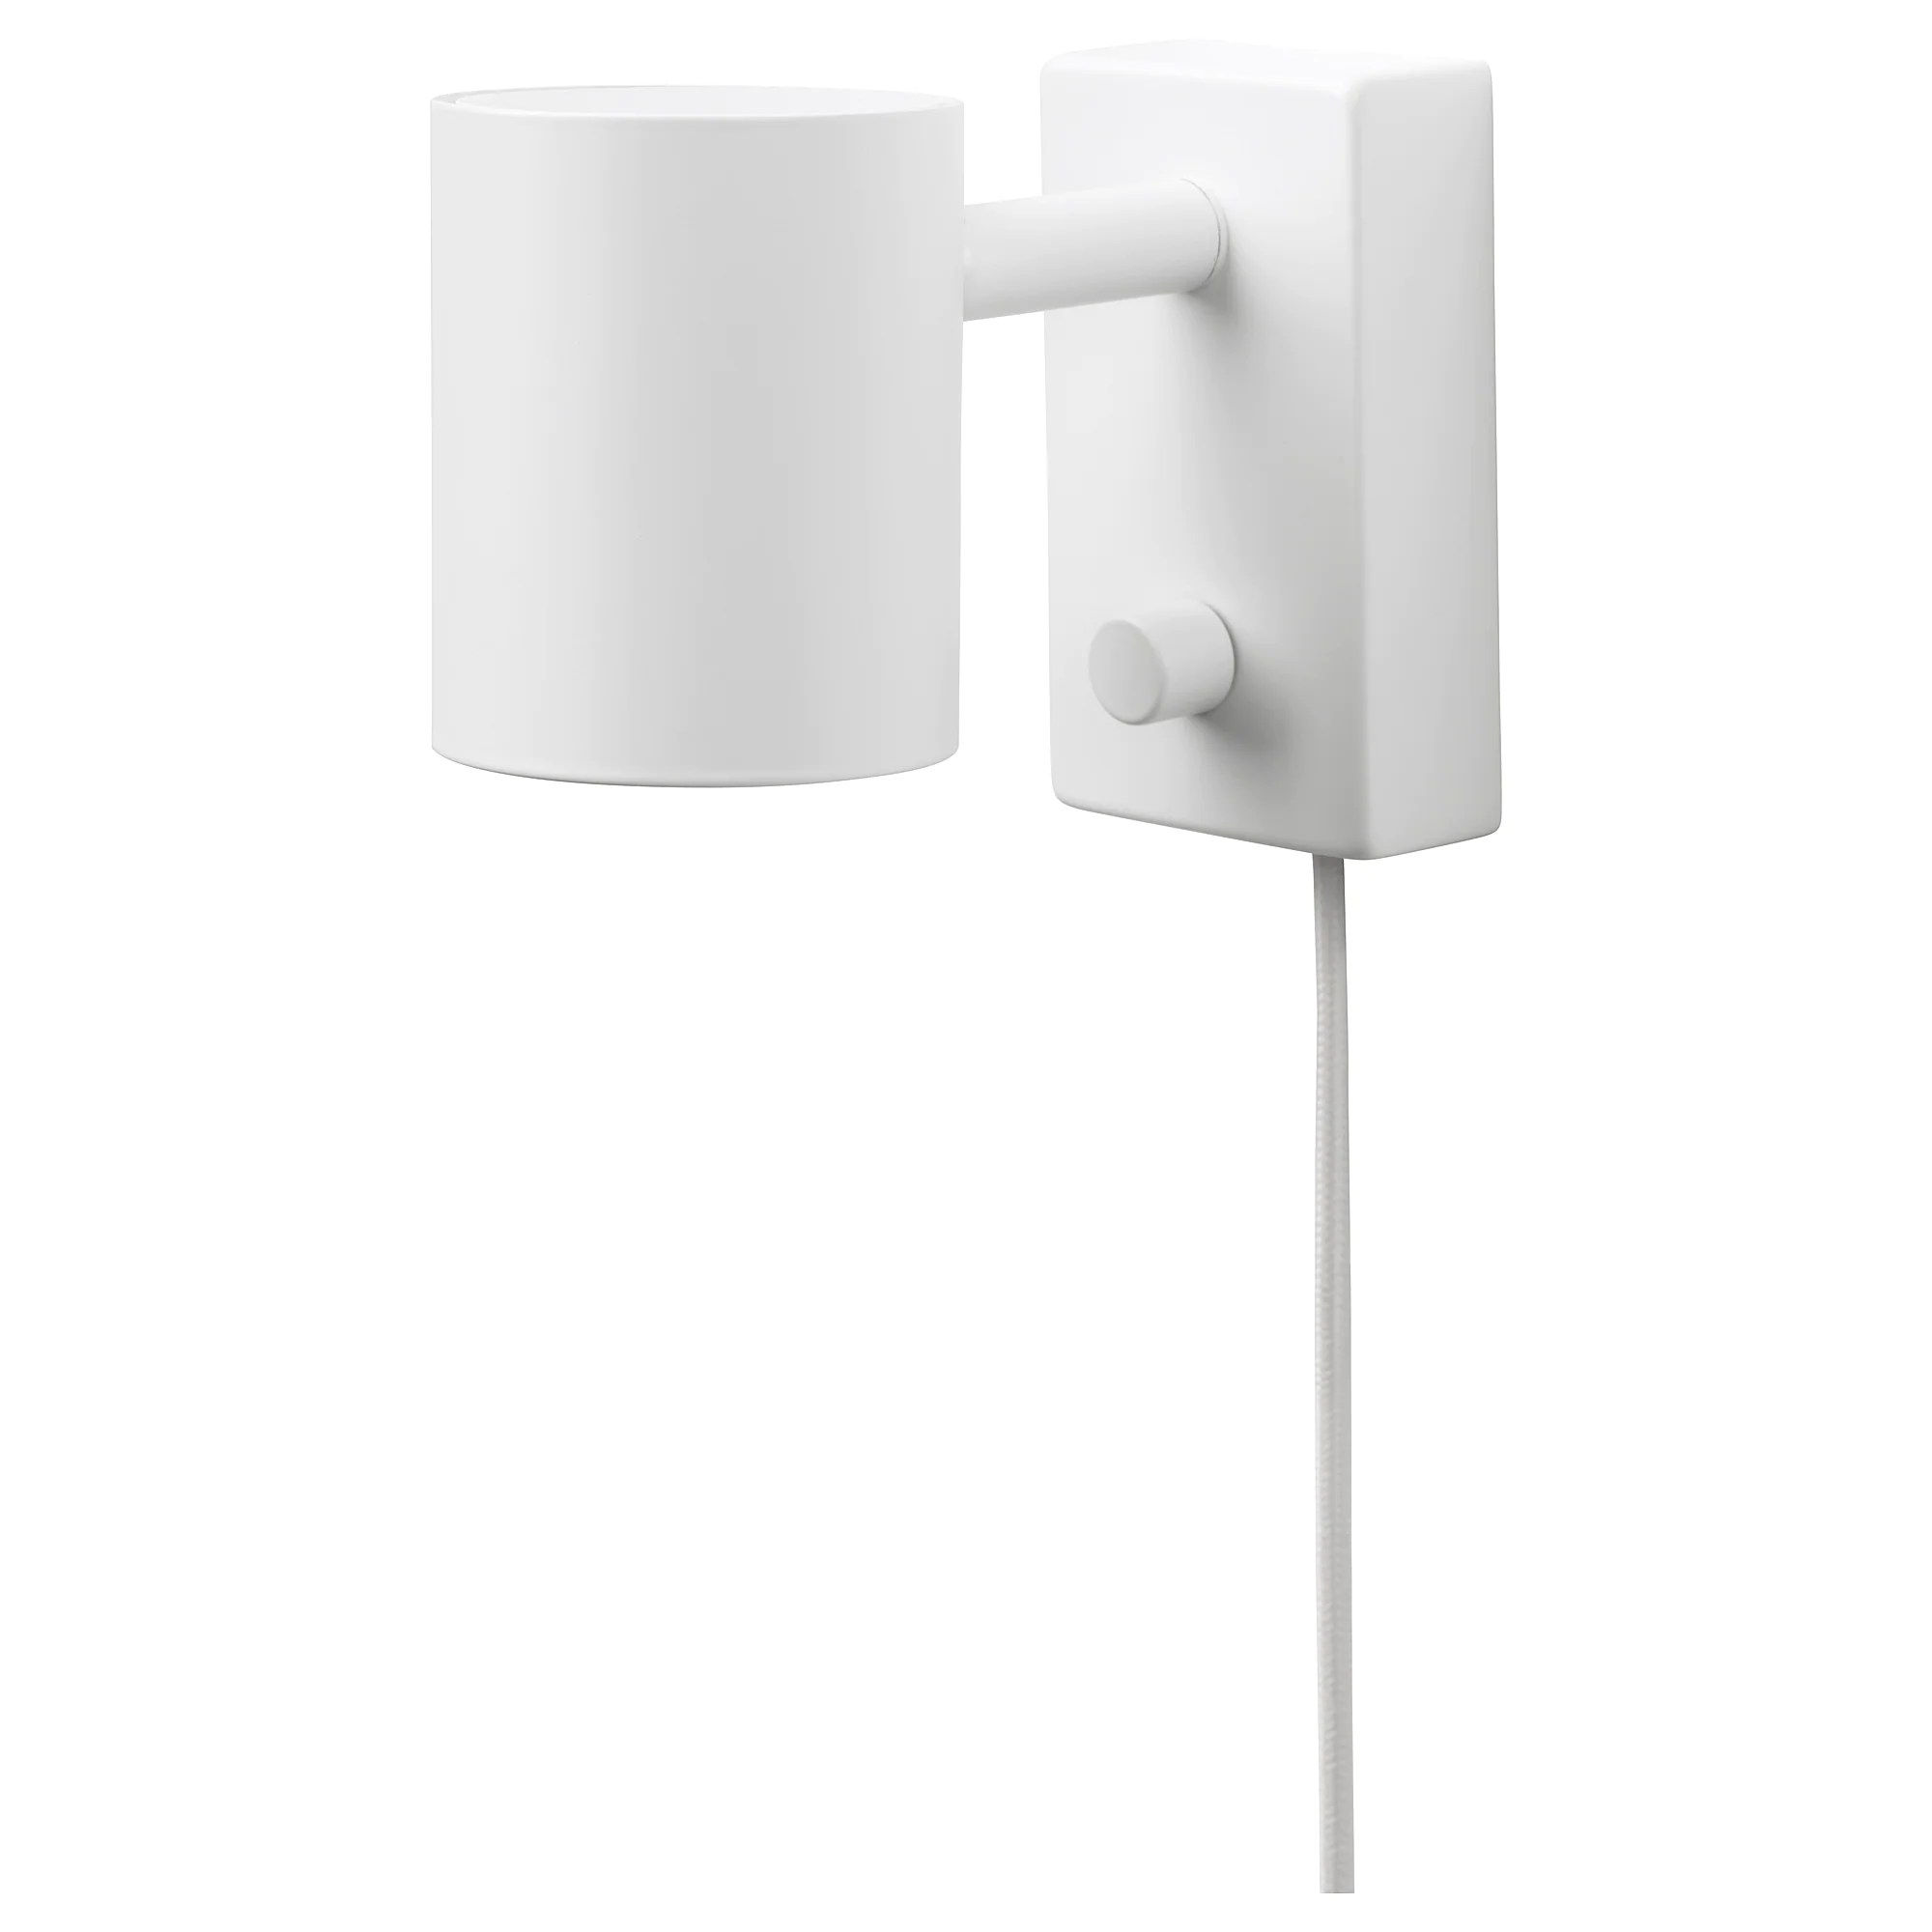 Led Hanglamp Ikea NymÅne Wall Reading Lamp With Led Bulb White